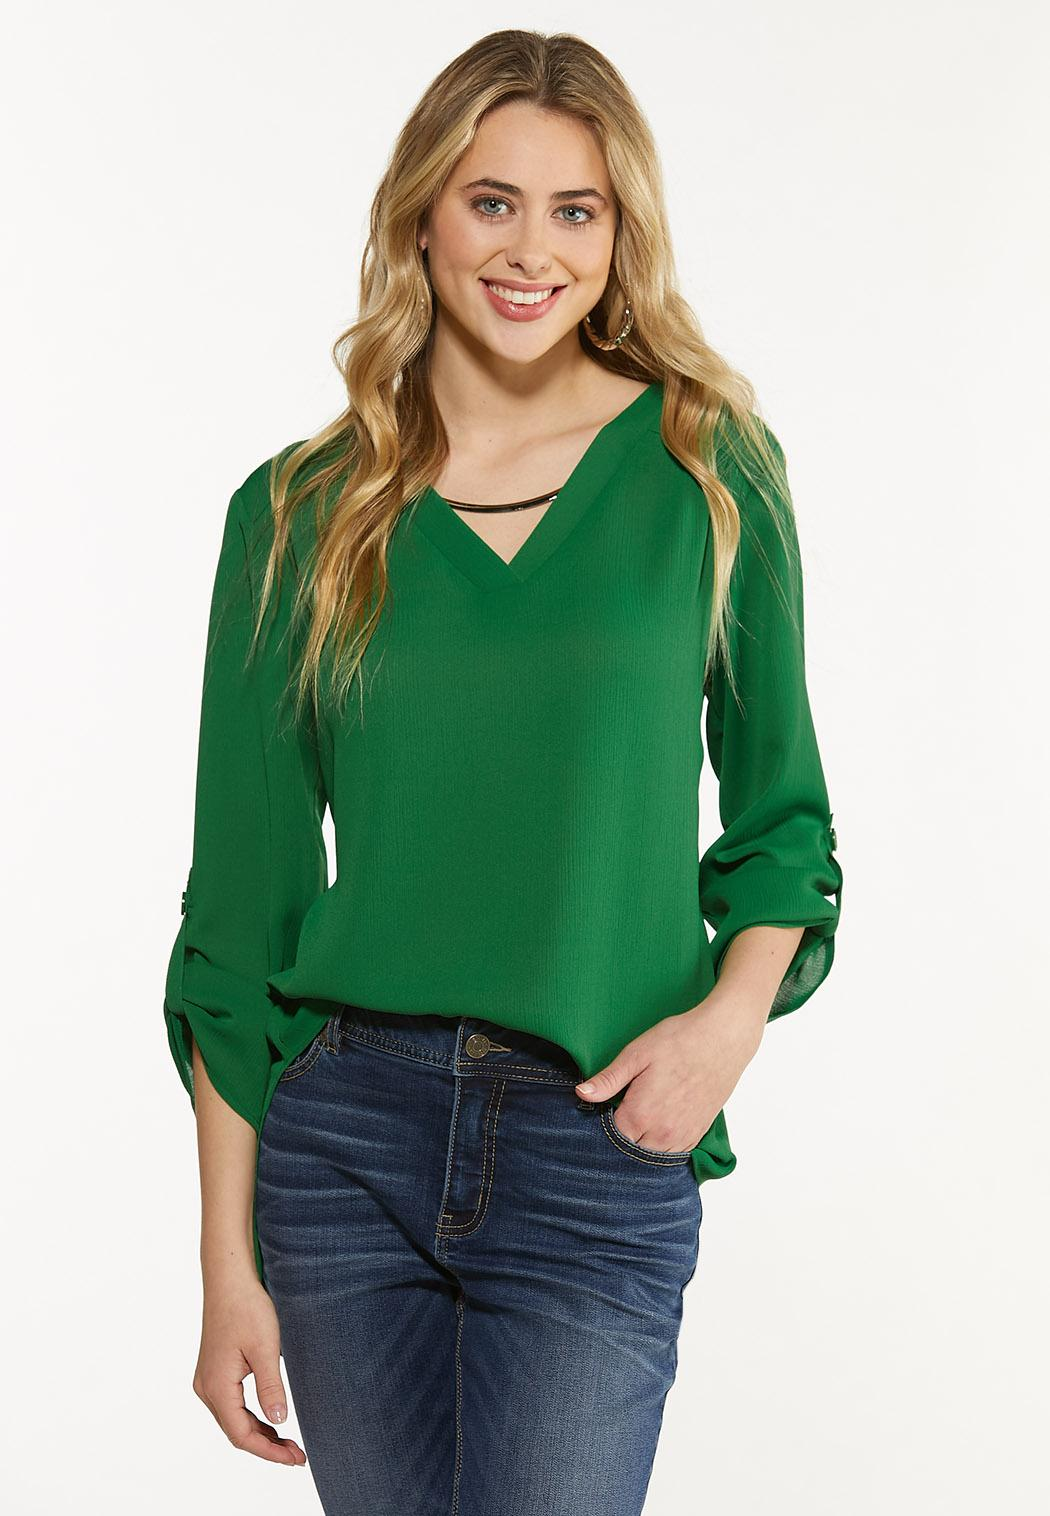 Green Silver Hardware Top